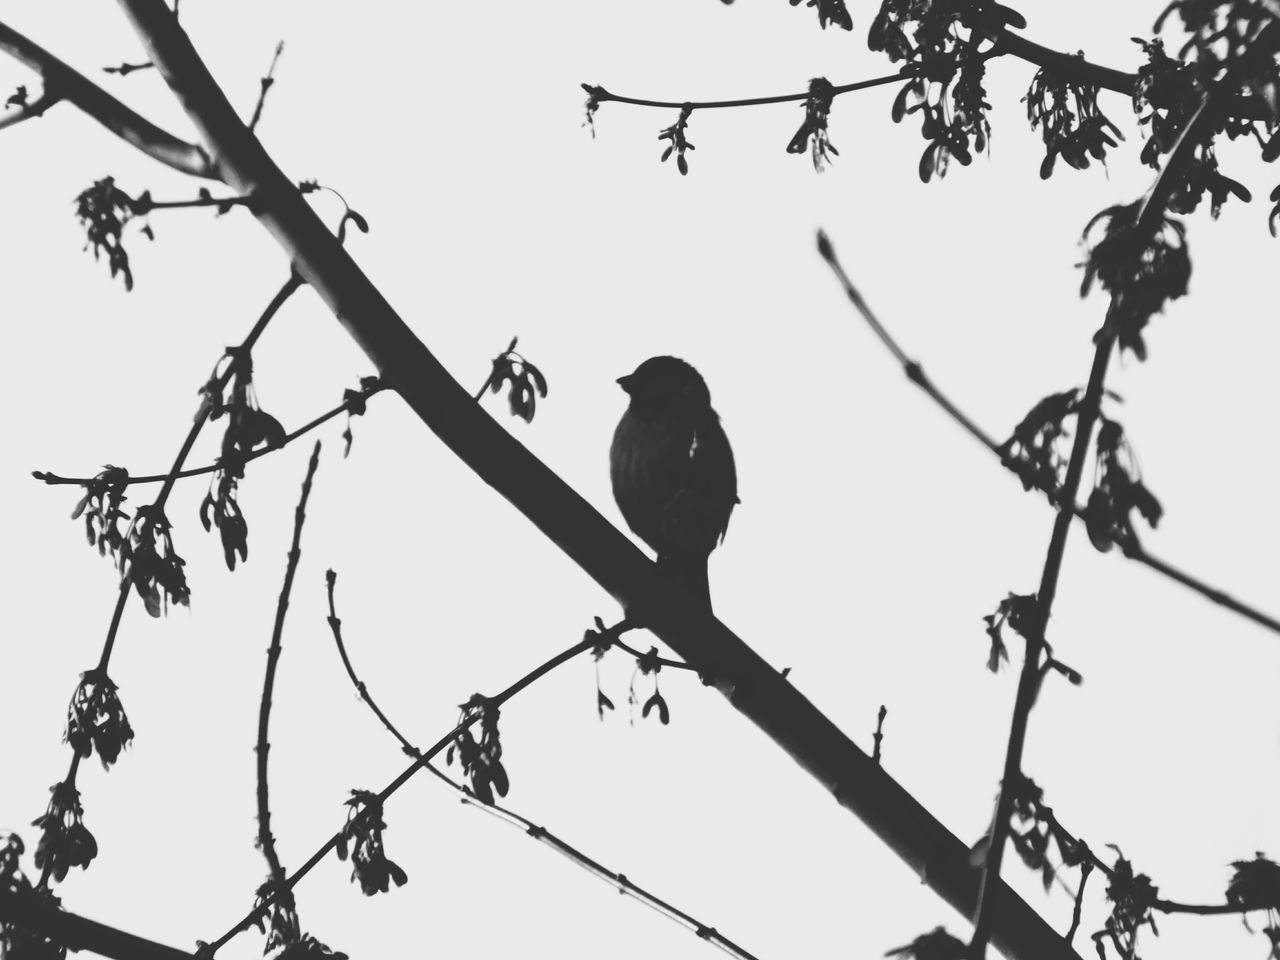 Bird Low Angle View Tree Silhouette Perching Bare Tree Branch Sky Outdoors Day No People Animal Themes Fujifilmhs35exr Eyeemphotography FujifilmFinePix Blackandwhite Black And White Photography Nature Photography Outdoor Photography Beautyinnature  EyeEmNewHere EyeEm Best Shots